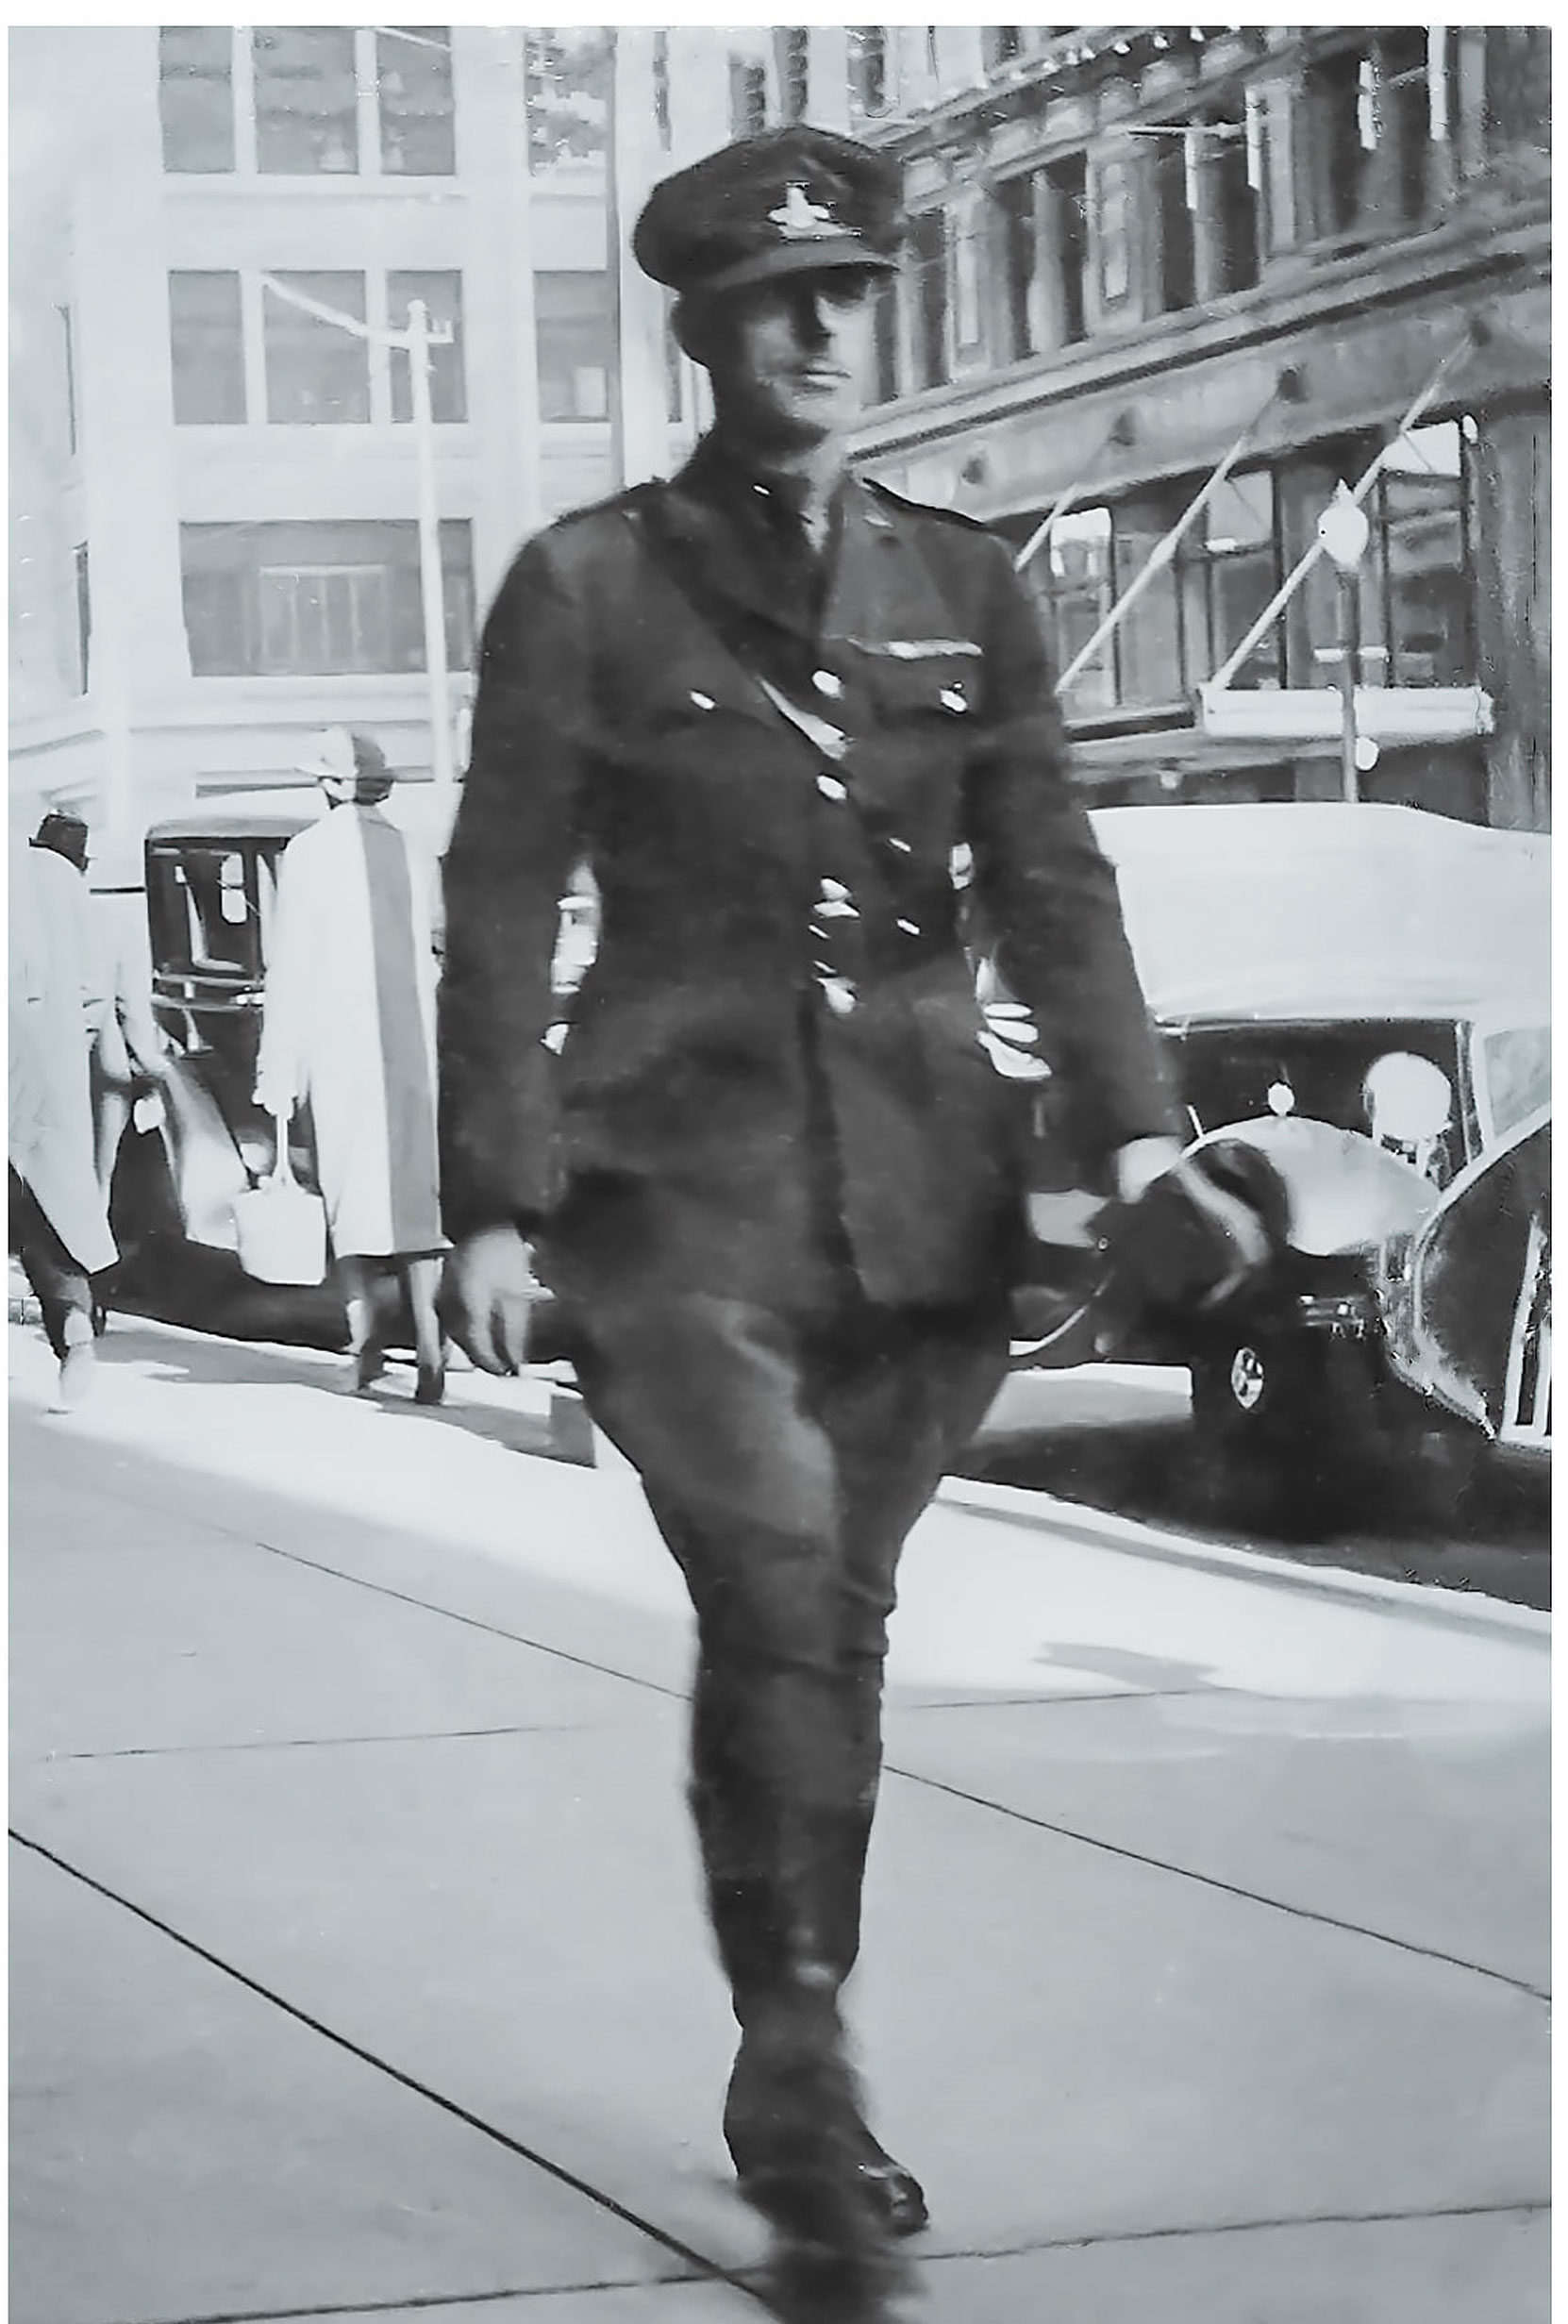 William Percy Aylward in B.C. Provincial Police uniform in Victoria, circa 1926 (photo courtesy of Rick Aylward, used with permission)